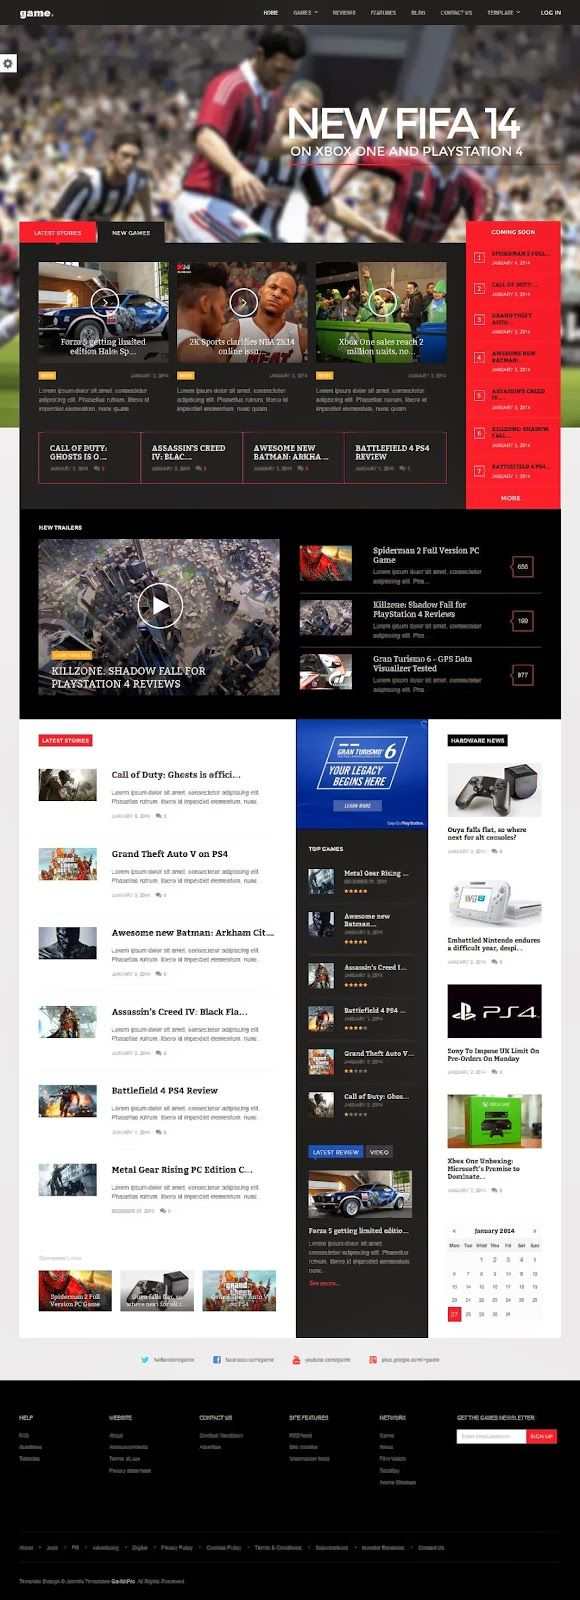 Take it to the next level with Game, the premium Joomla template. Gamers want functionality and usability, but still appreciate a bit of eye-candy. Game provides with clear, concise news and articles and stunning visuals that herald the beginning of the new generation.